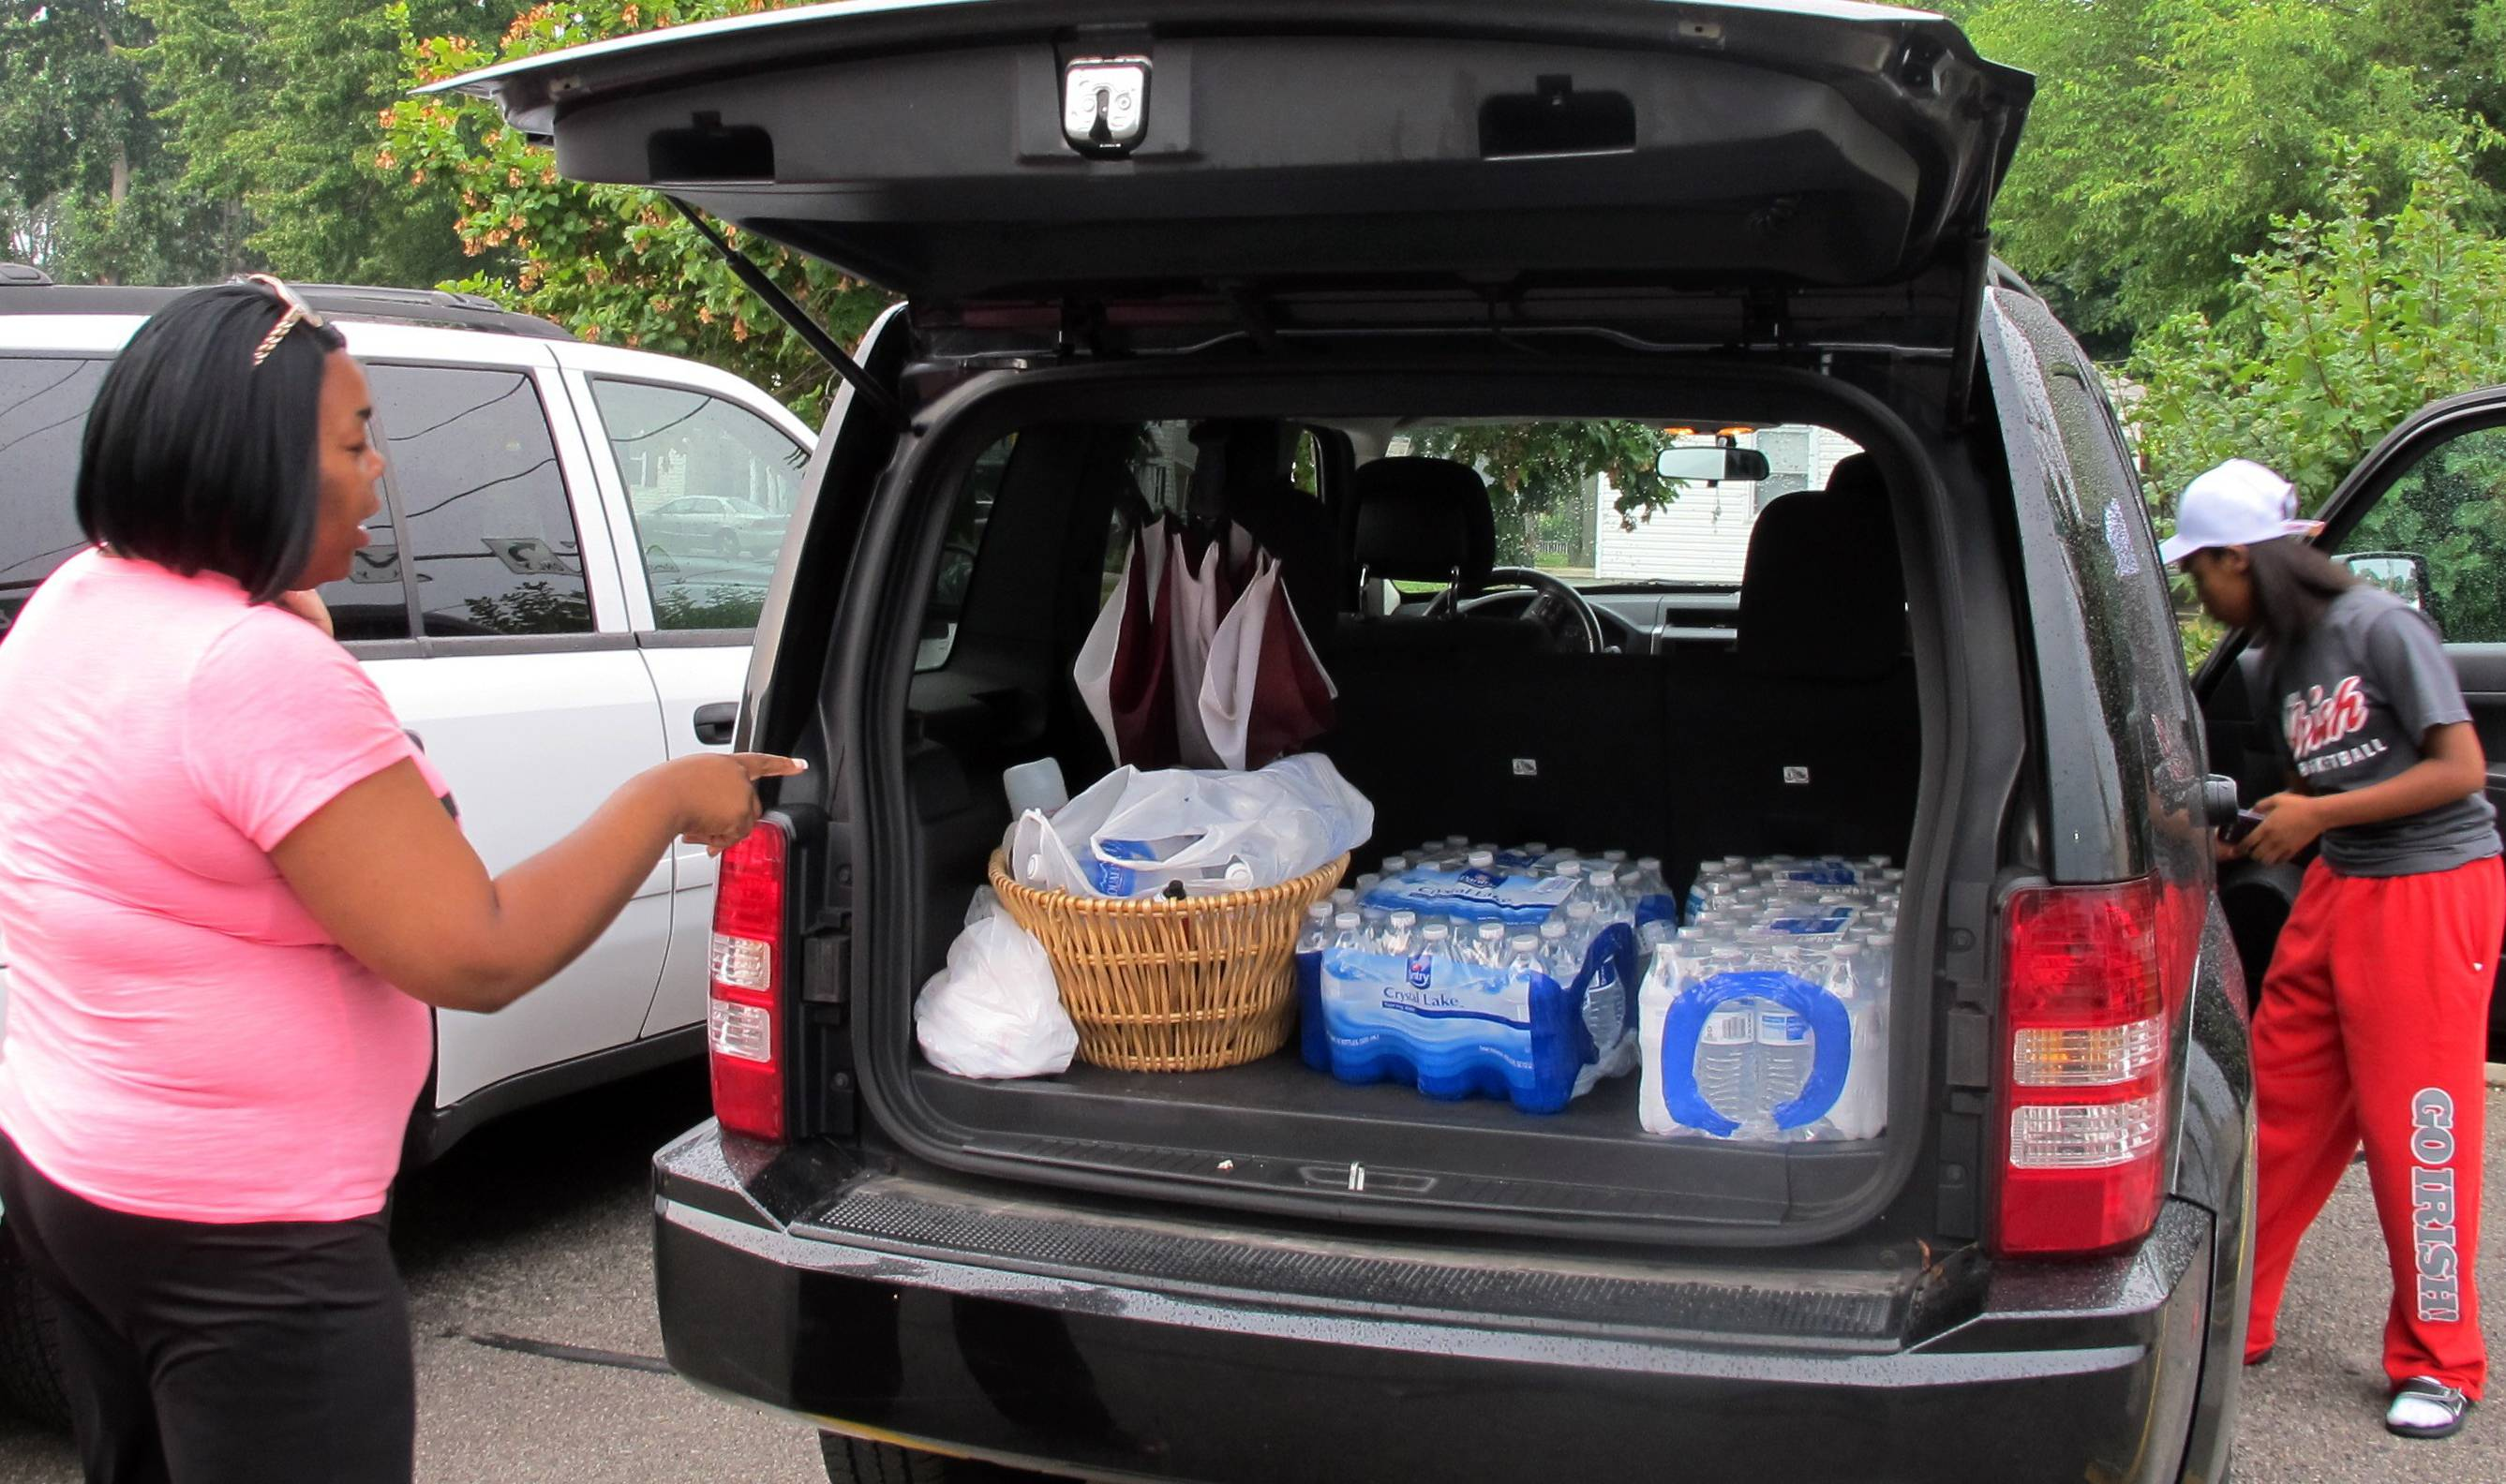 Aundrea Simmons stands next to her minivan with cases of bottled water she bought after Toledo warned residents not to use its water, Saturday, Aug. 2, 2014 in Toledo, Ohio. About 400,000 people in and around Ohio's fourth-largest city were warned not to drink or use its water after tests revealed the presence of a toxin possibly from algae on Lake Erie.